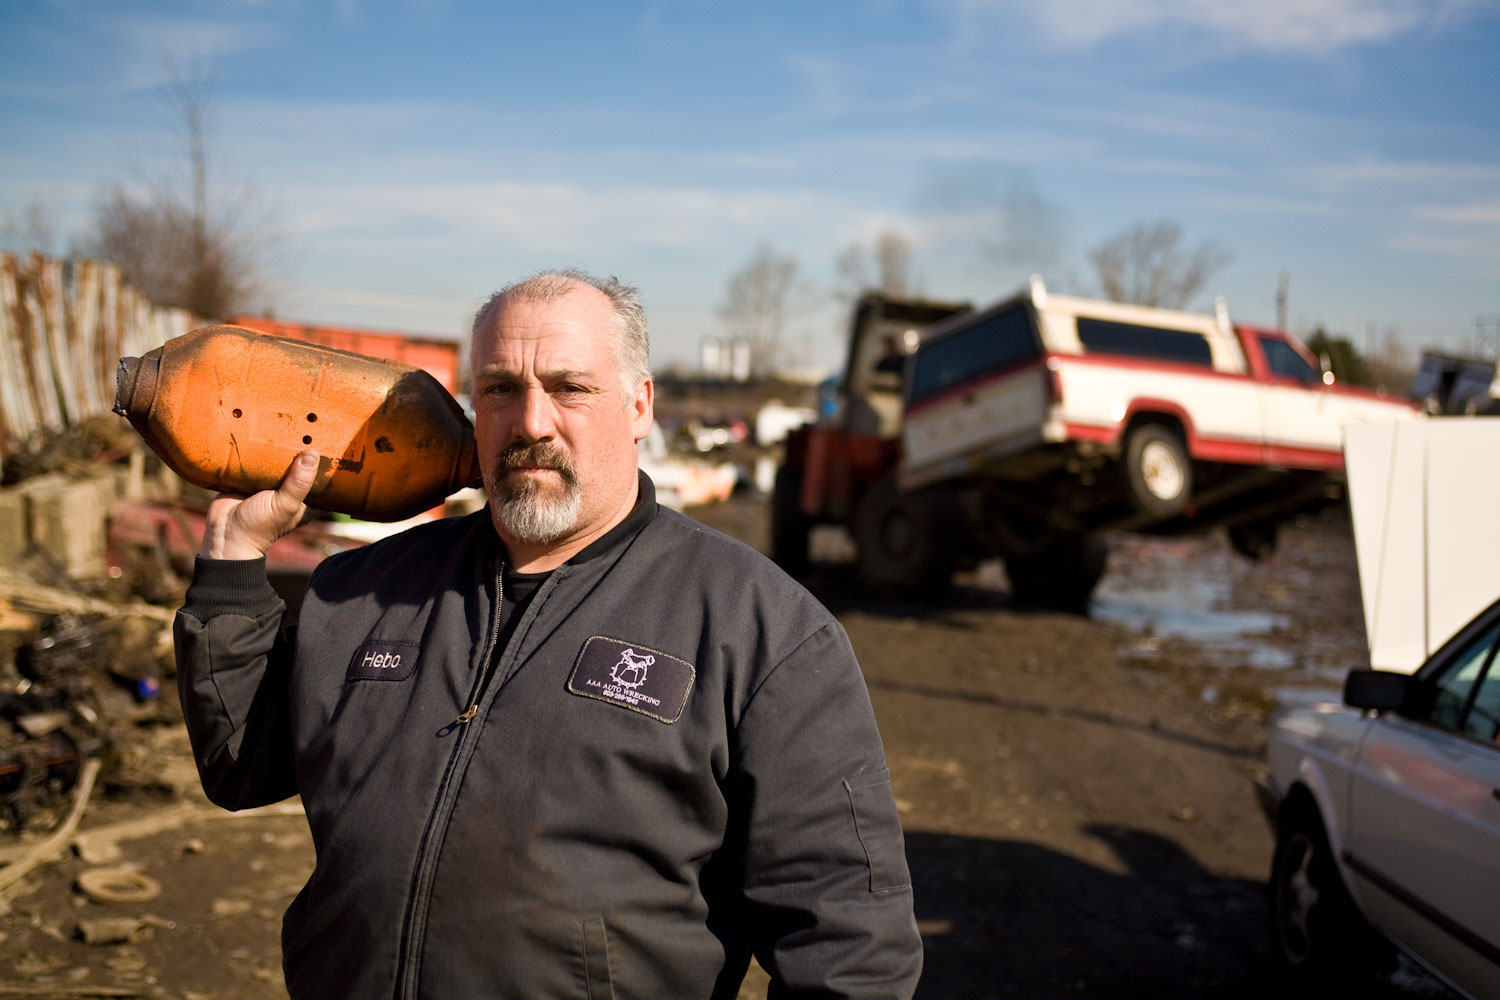 Heber Thurston, owner of AAA Auto Wrecking holds a catalytic converter in Portland junkyard